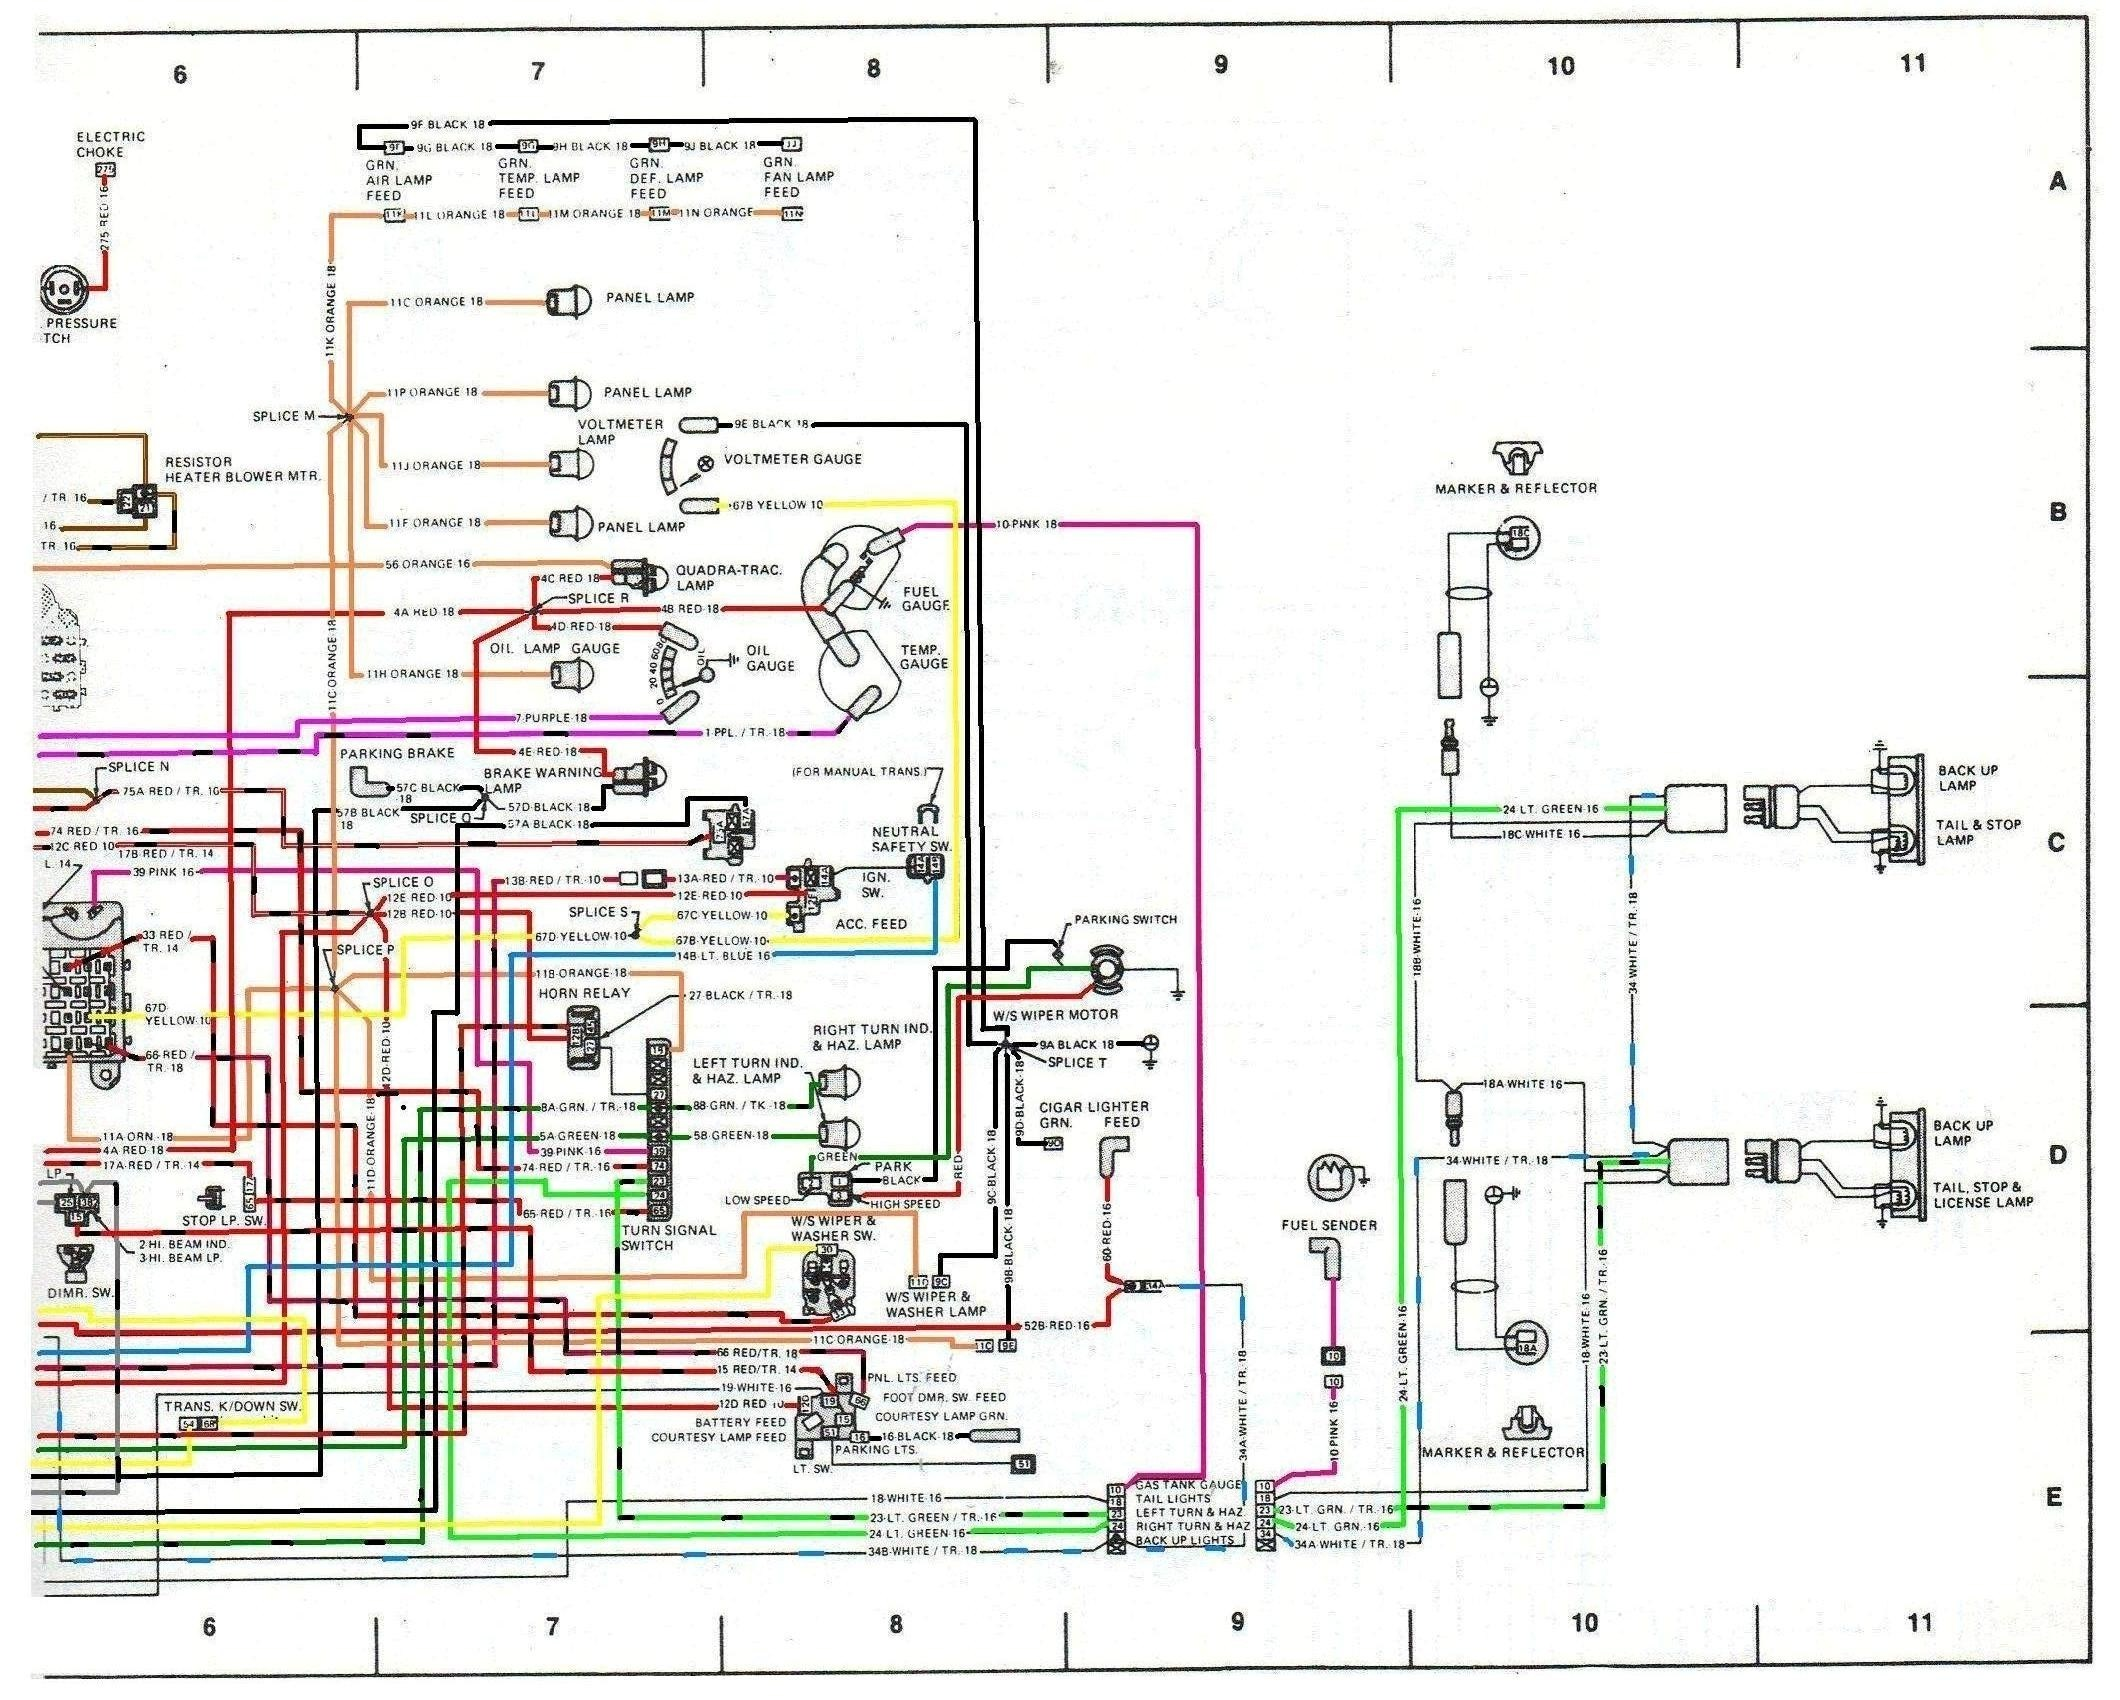 2008 Jeep Wrangler Wiring Diagram Pdf from static-resources.imageservice.cloud